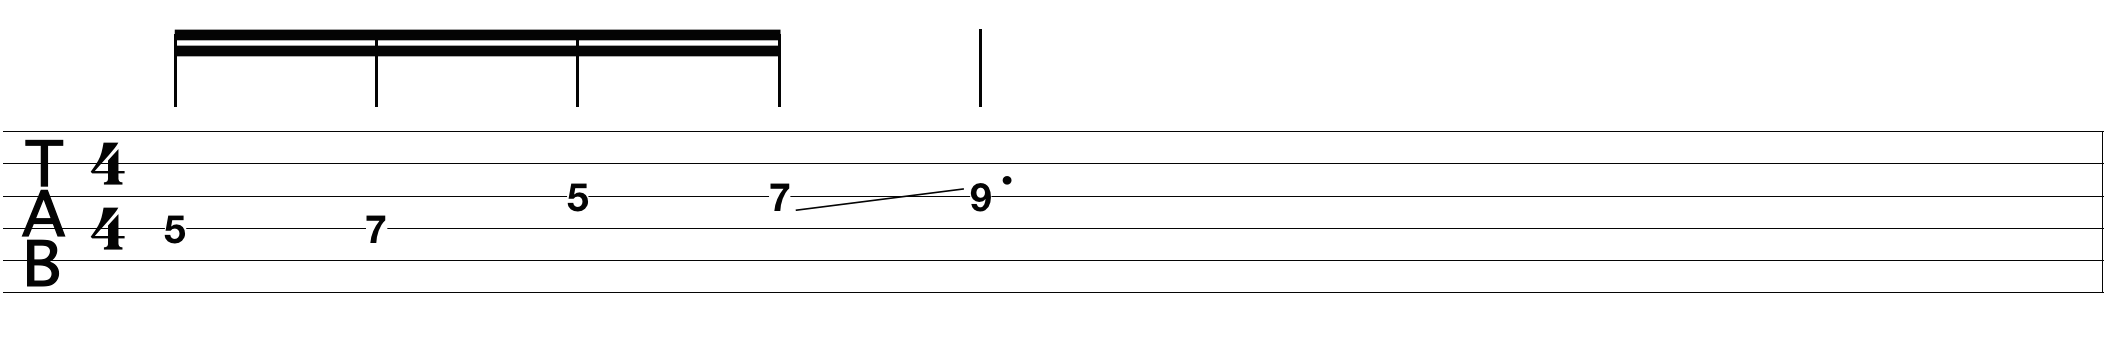 slide-guitar-tips_1.png